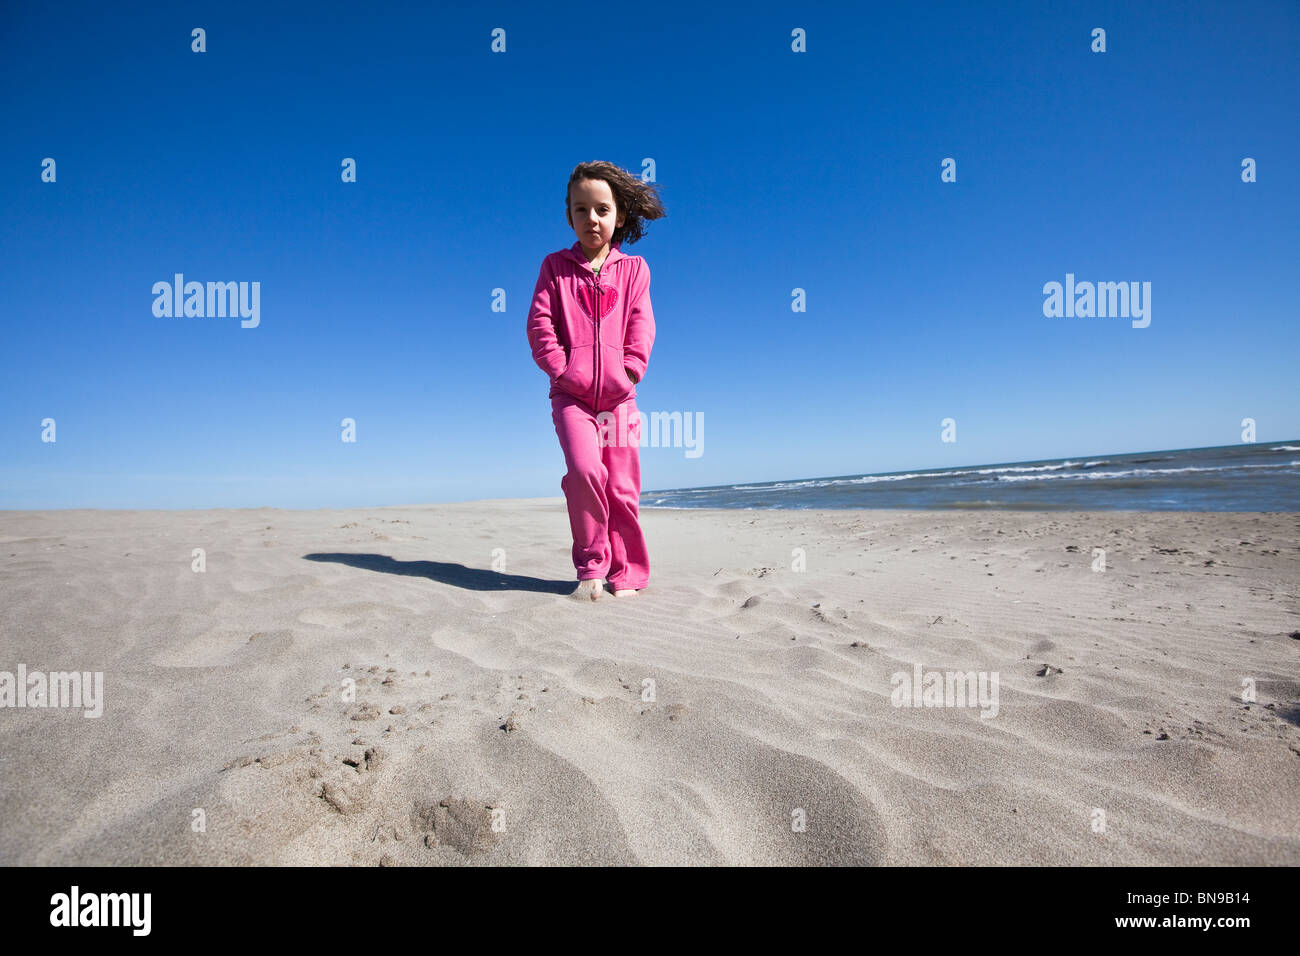 Girl walking on a beach in France. Stock Photo